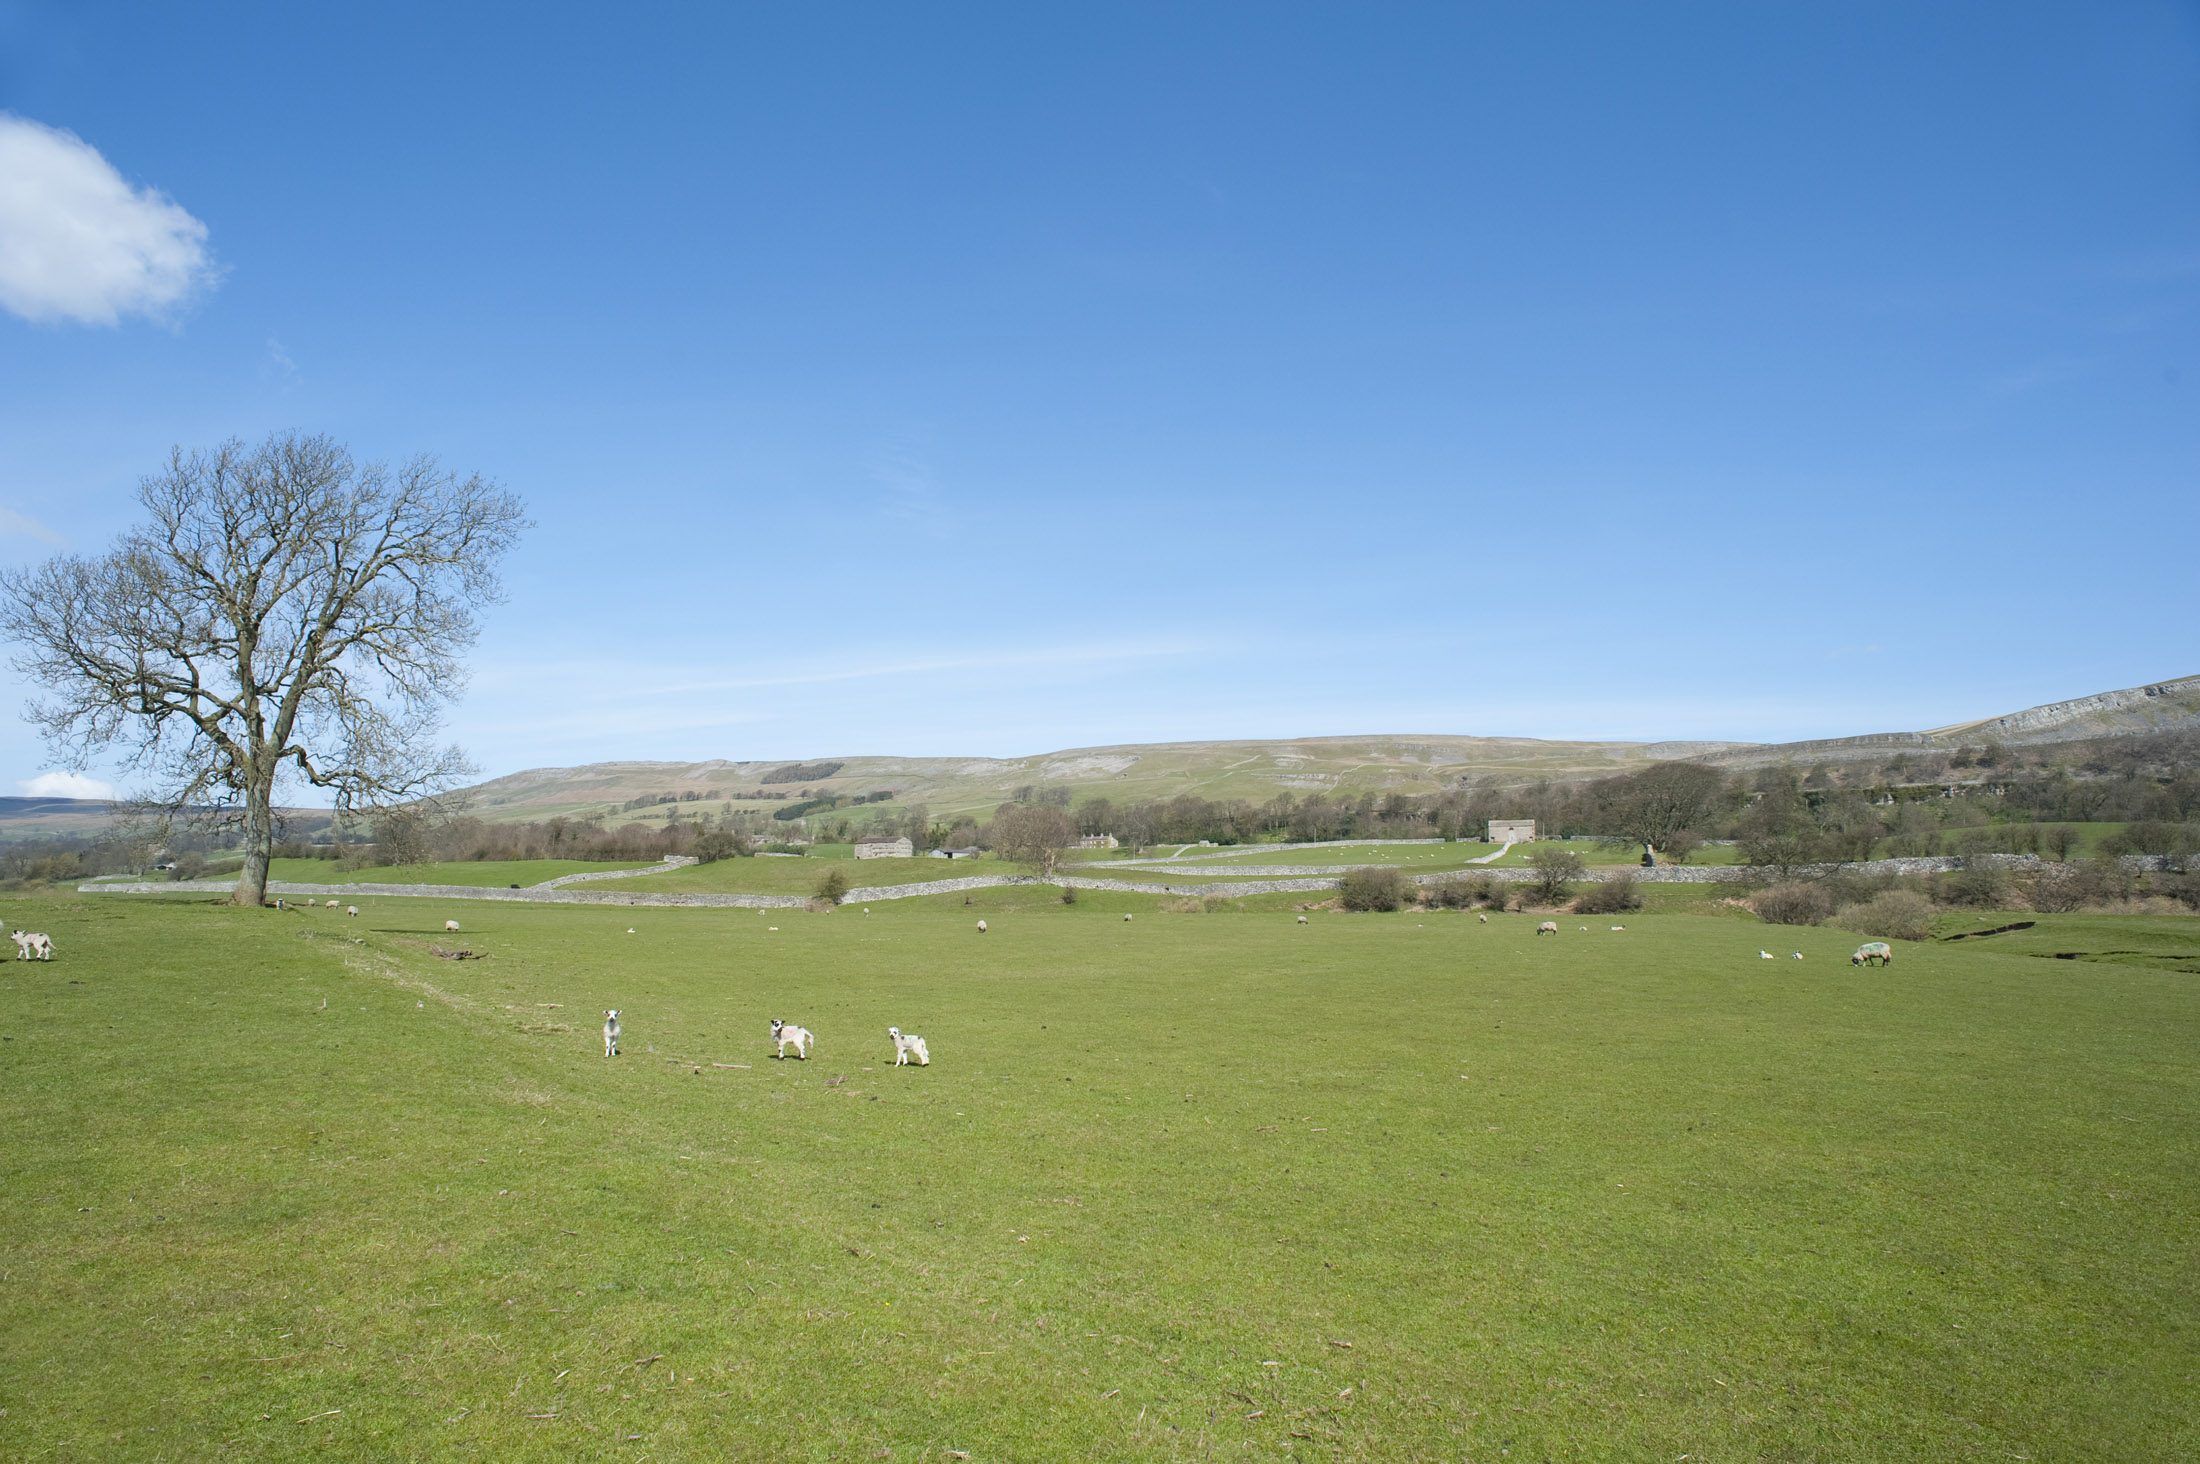 free stock photo of spring in wensleydale photoeverywhere